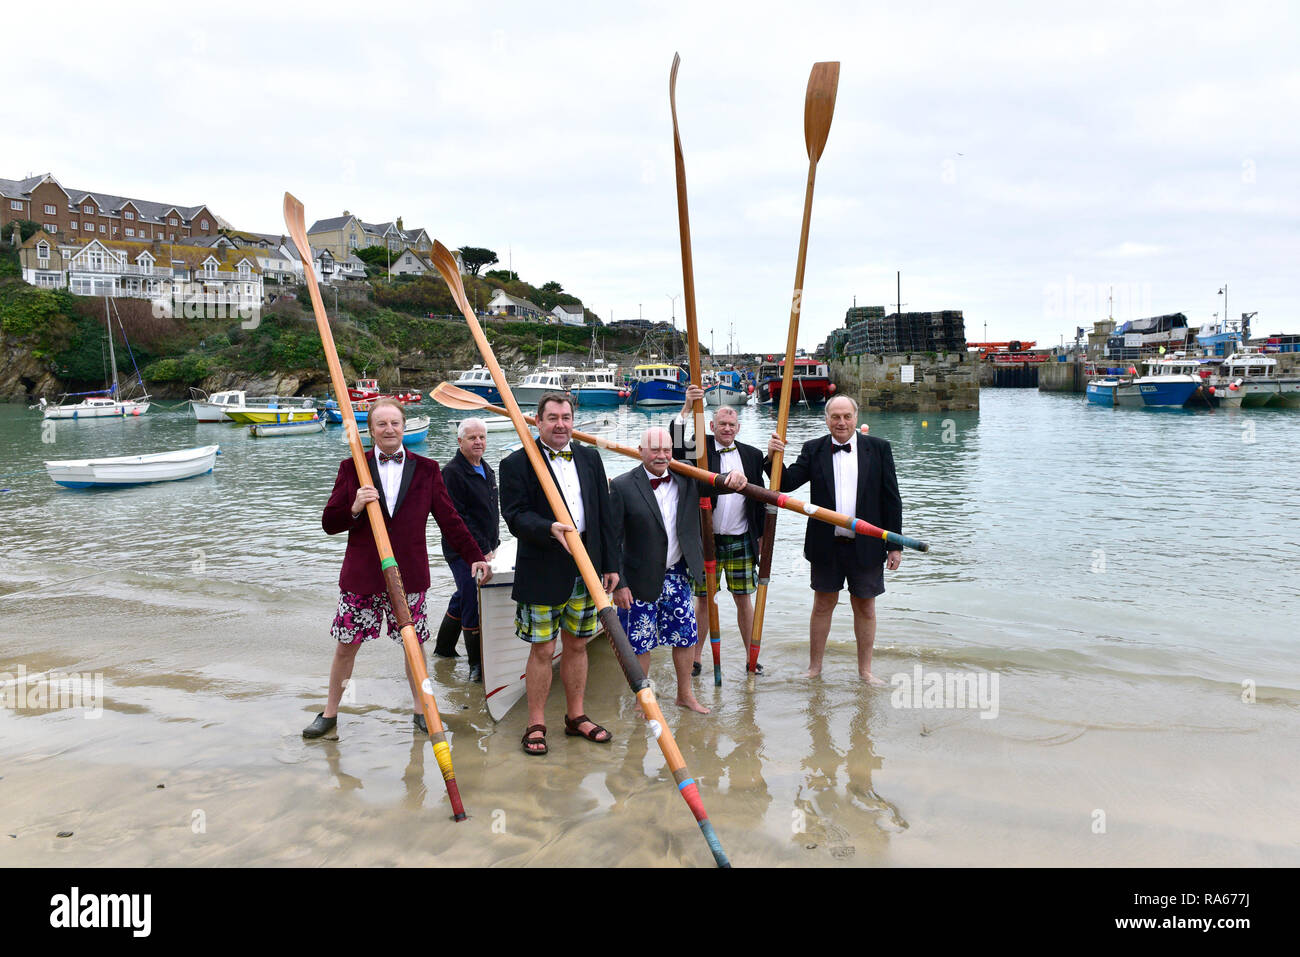 Newquay, Cornwall, UK. 21st April, 2018.  Senior members of Newquay Rowing Club wearing tuxedos prepare to set off on their annual 'Port Run'.  A bottle of port is rowed across Newquay Bay to Porth Island by these rowers in a traditional Cornish Pilot Gig.  Once they land the bottle is consumed by the rowers who then return to Newquay Harbour.   Gordon Scammell/Alamy Live News. - Stock Image